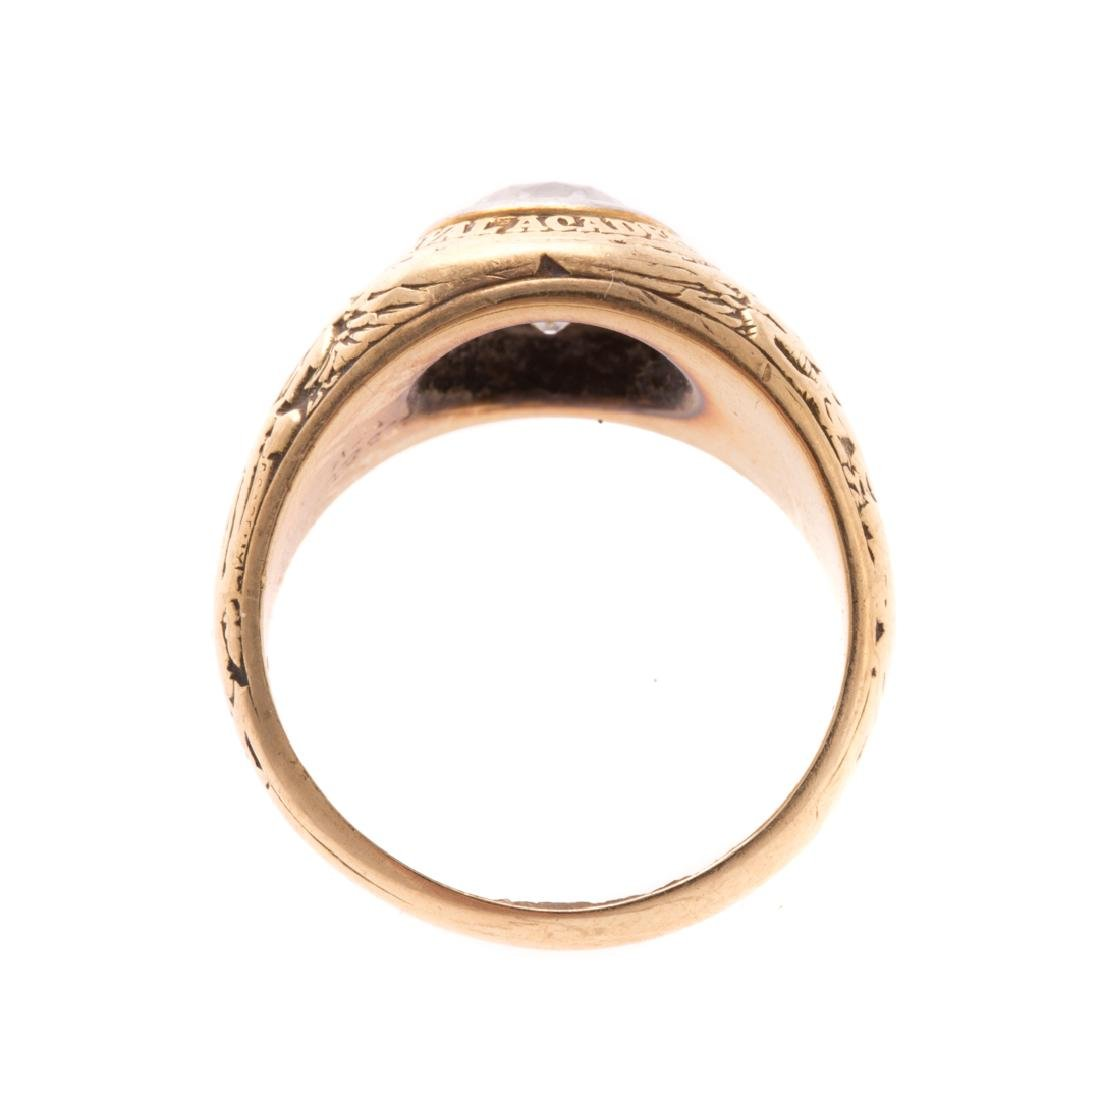 A Lady's Miniature US Naval Academy Ring in 14K - 3